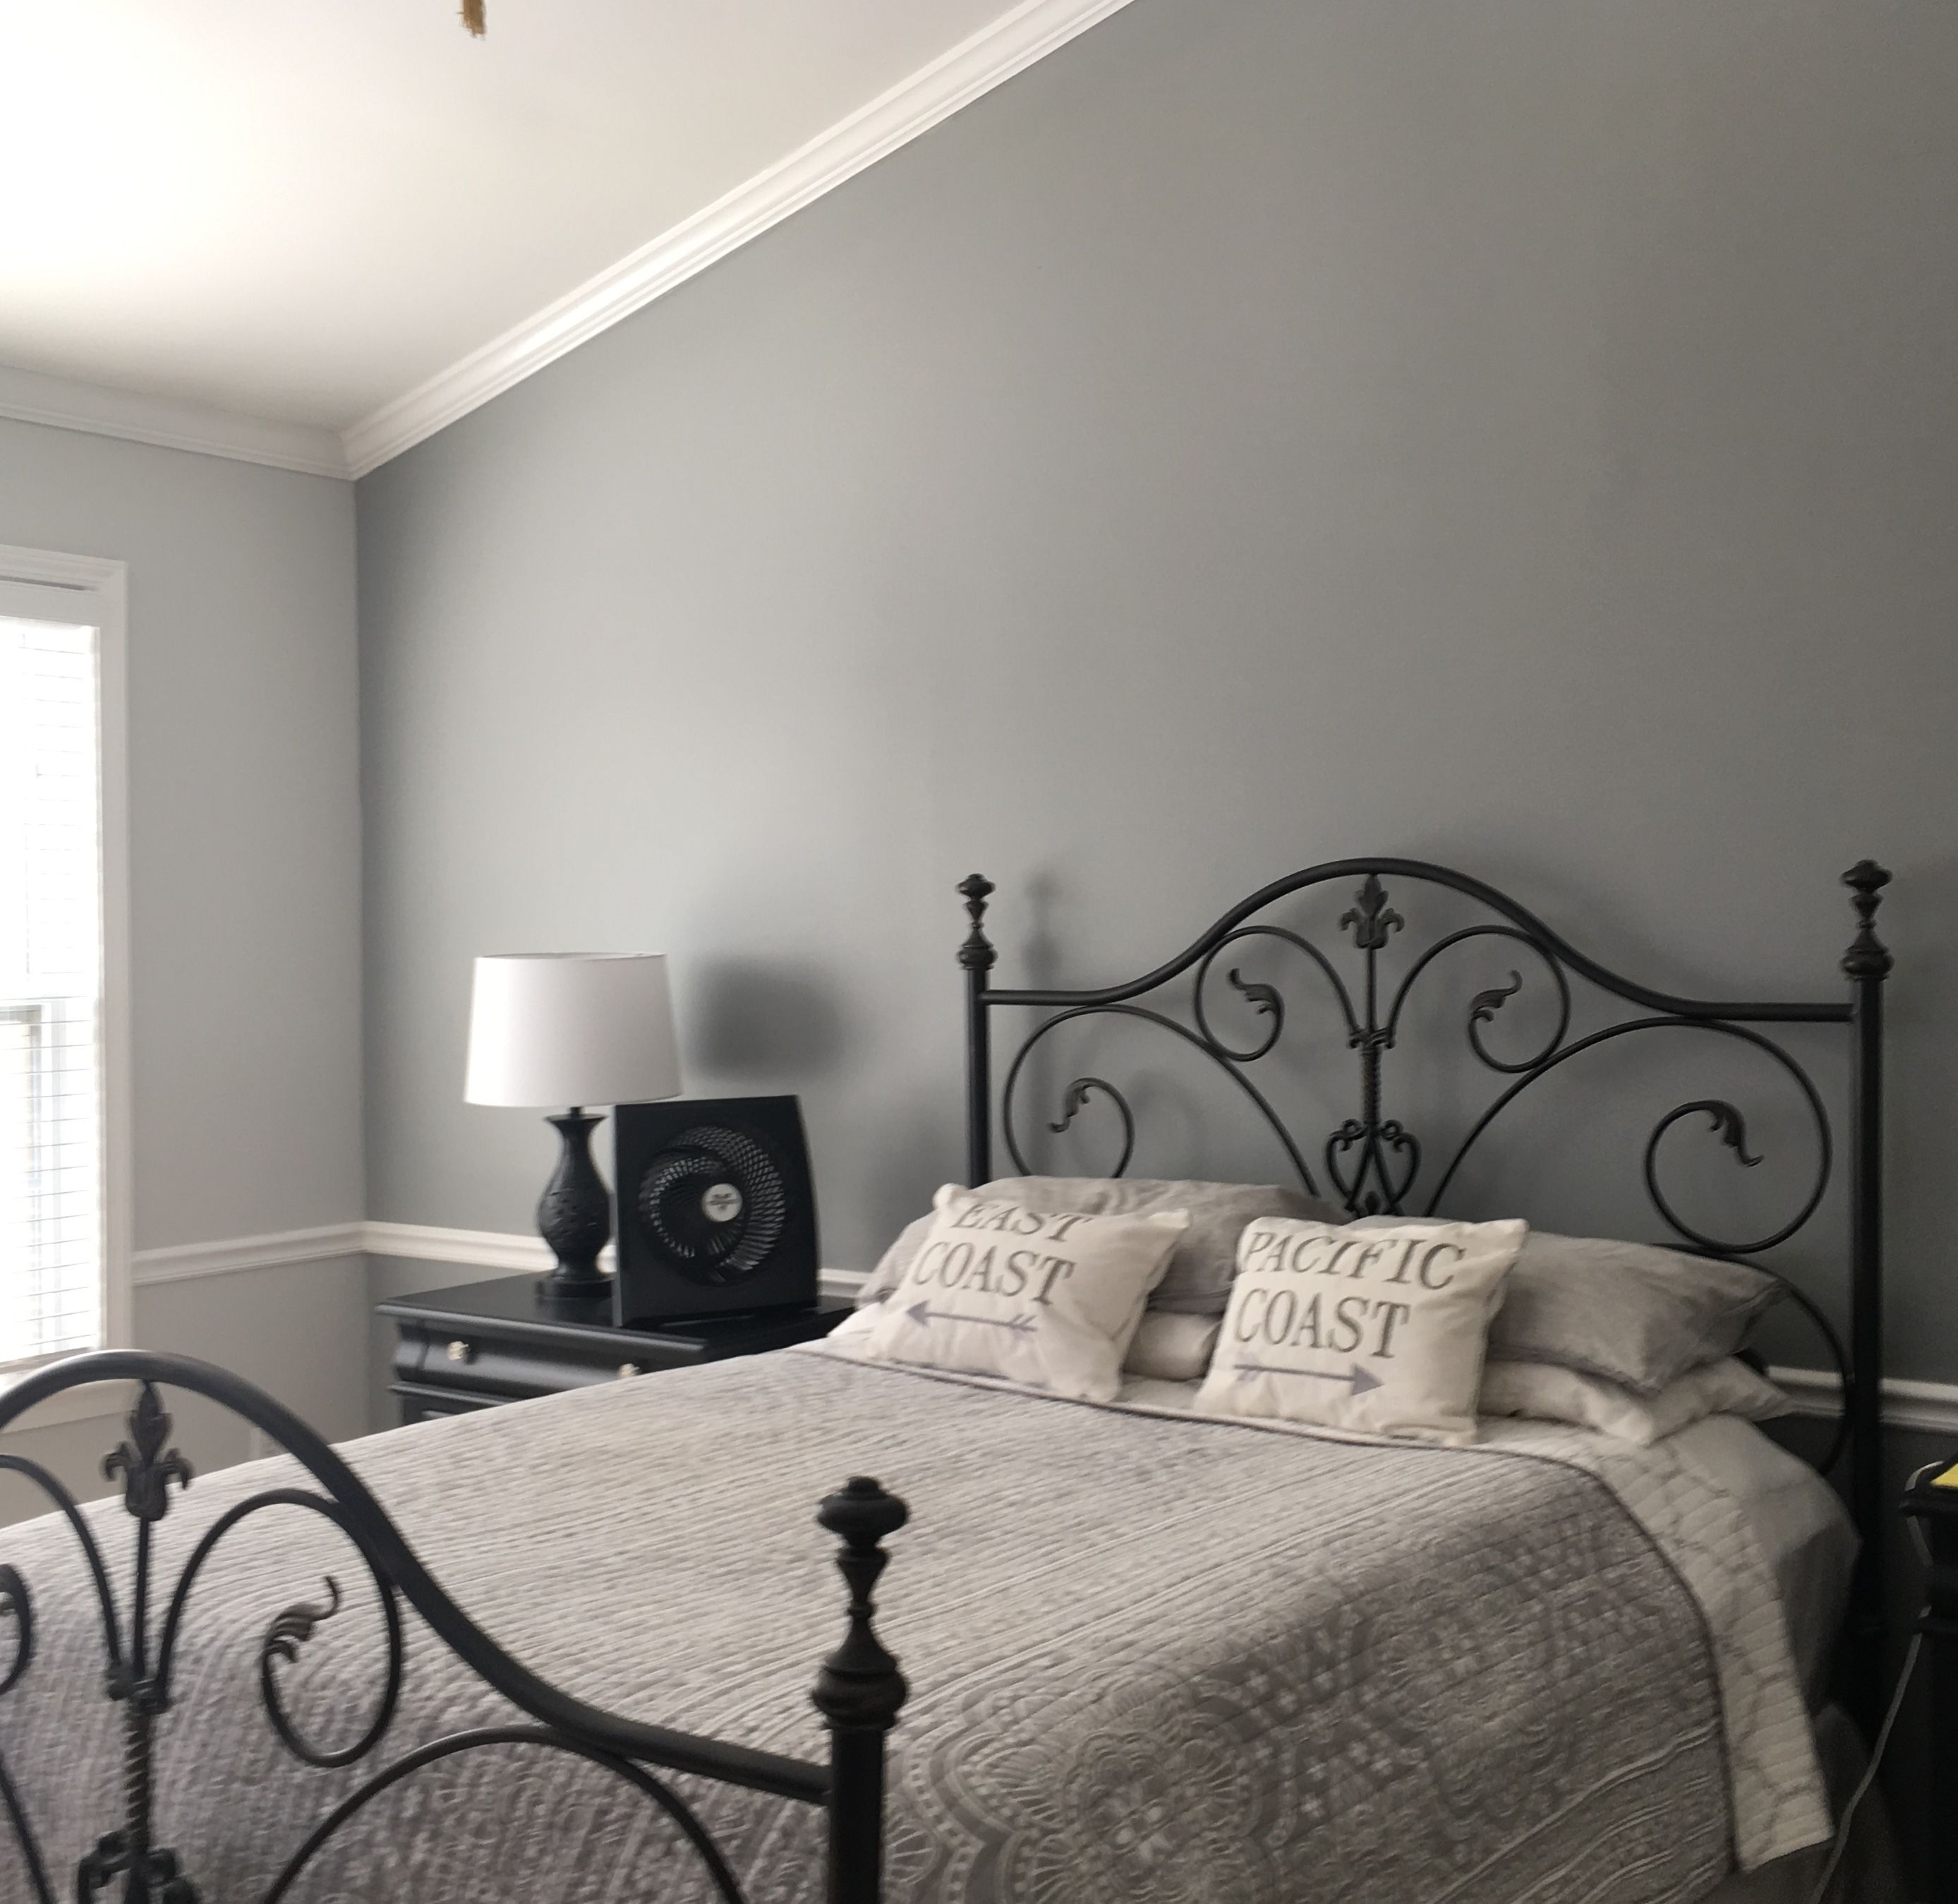 Behr Chain Reaction In Egg Shell As Accent Wall Behr Paint Colors Bedroom Paint Colors For Living Room Bedroom Paint Colors